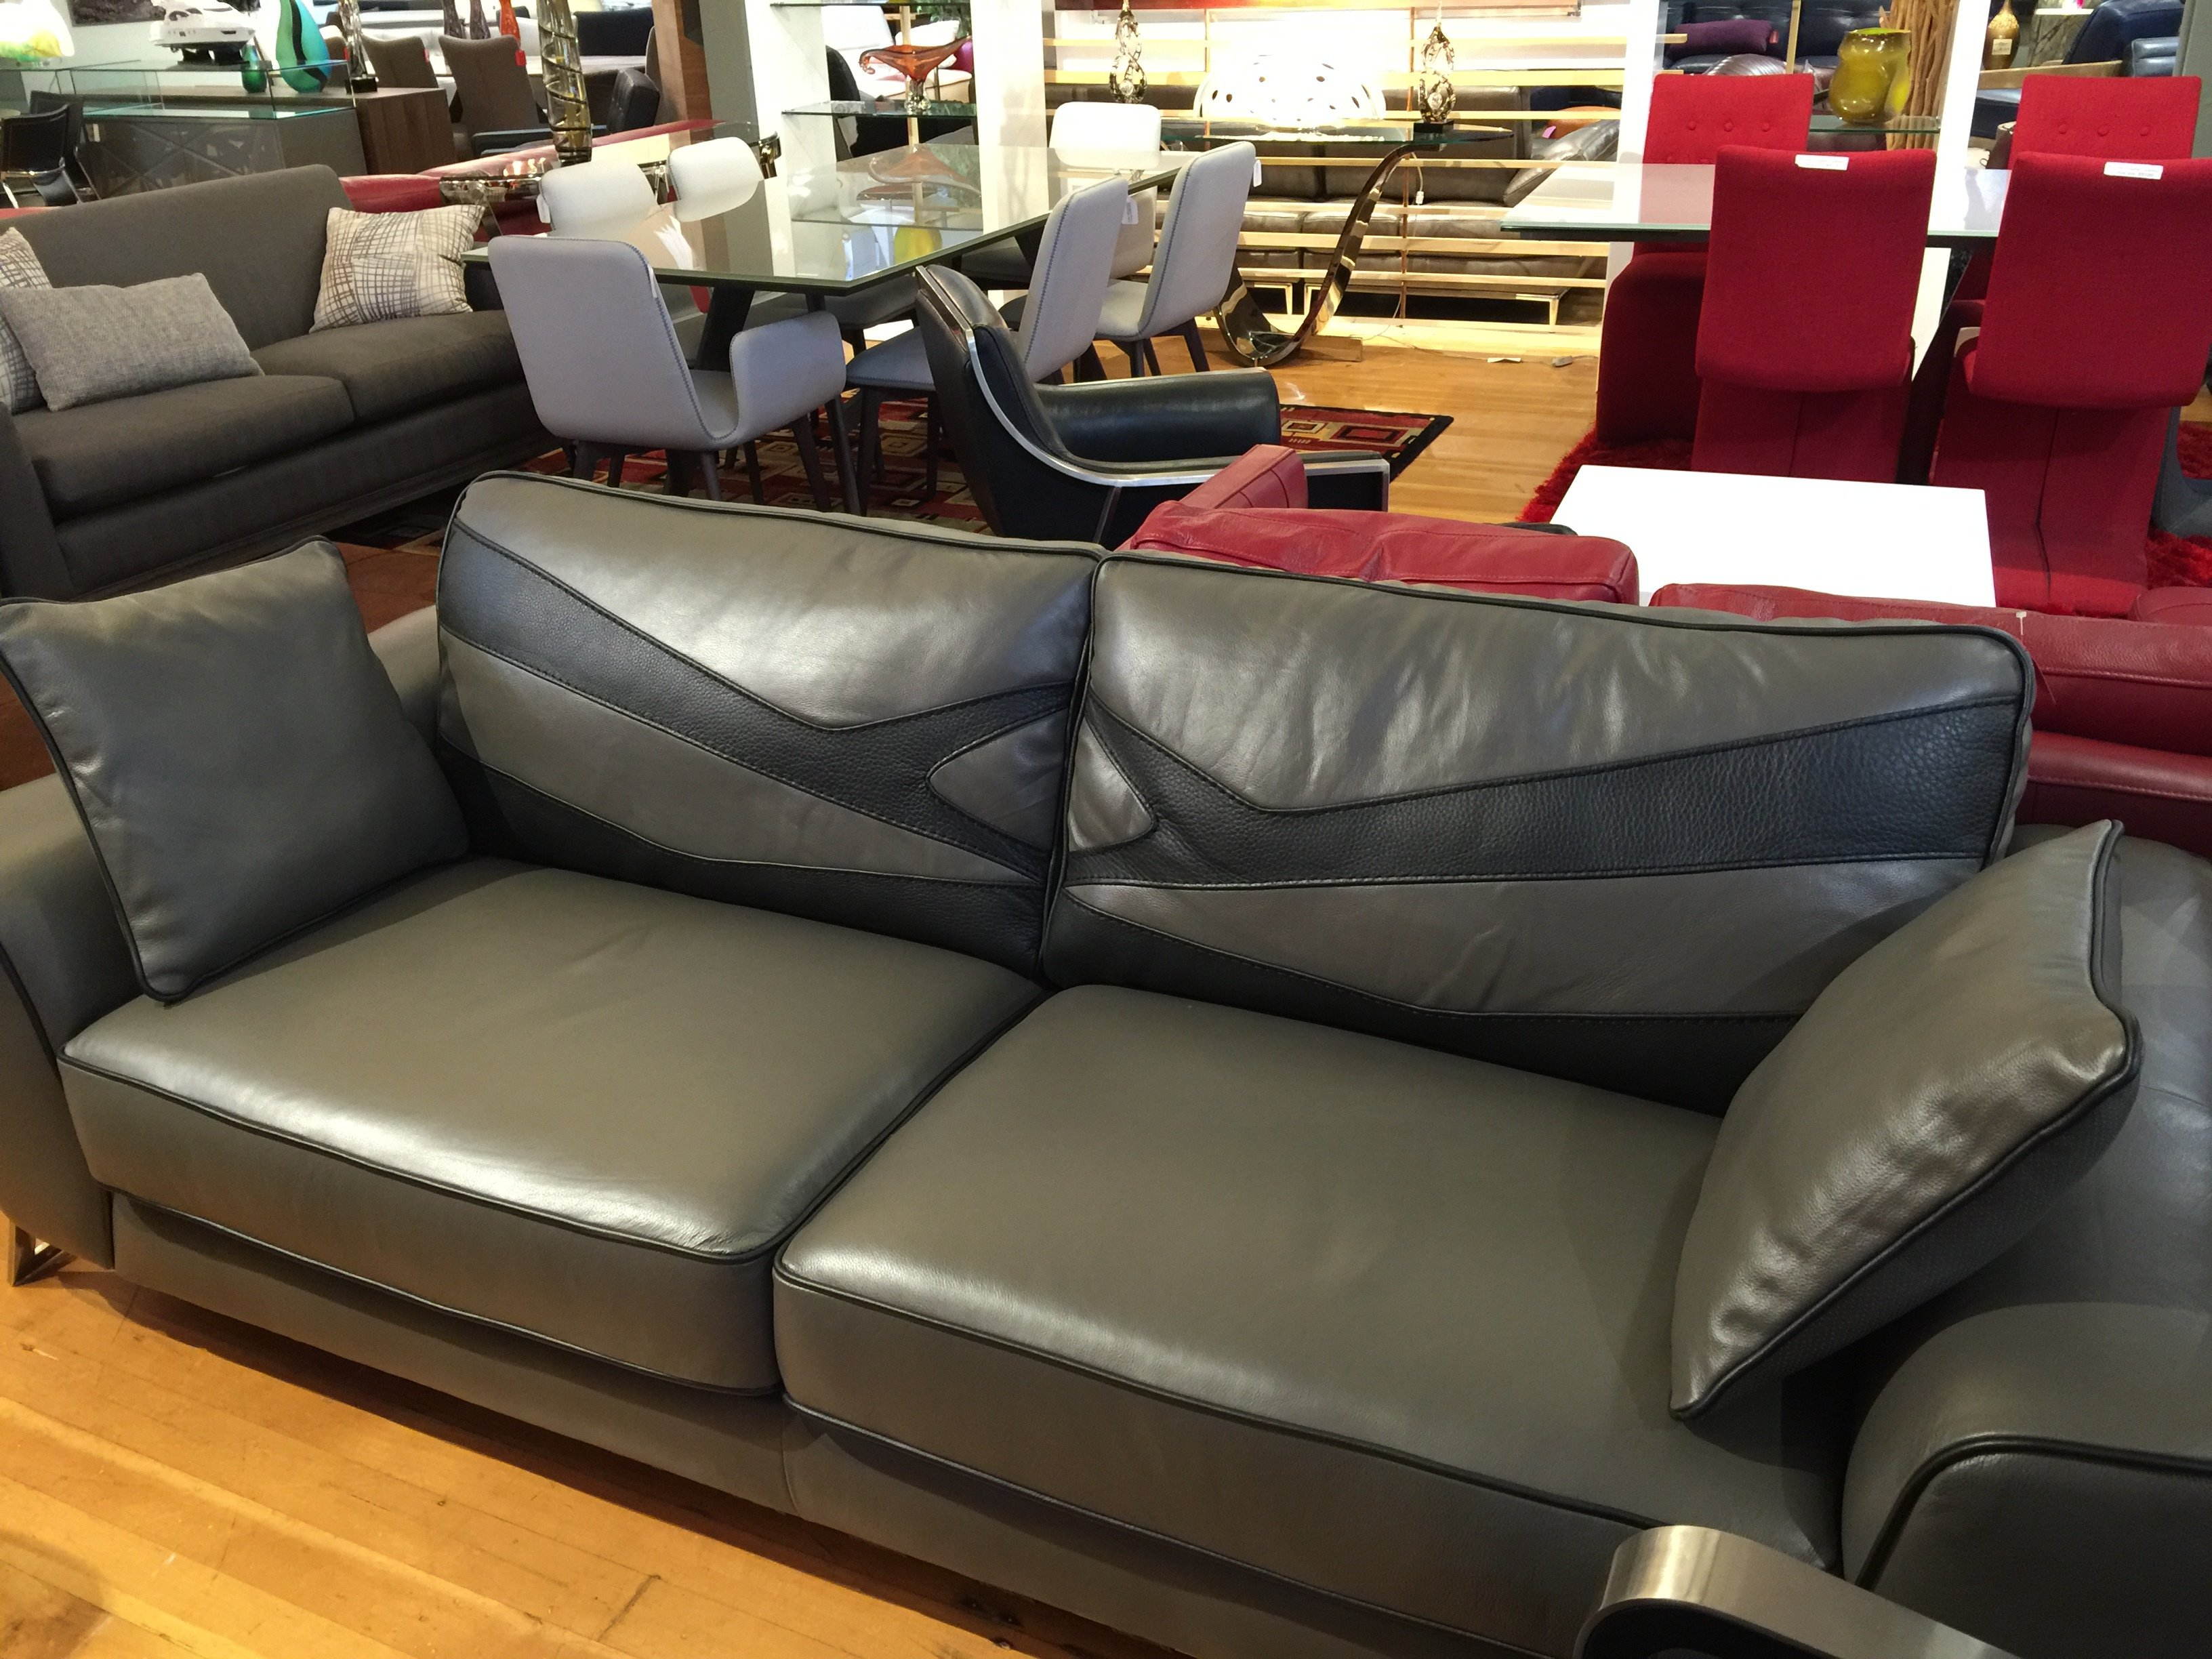 Furniture store showroom san francisco ca wholesale furniture store - Wholesale contemporary furniture warehouse ...